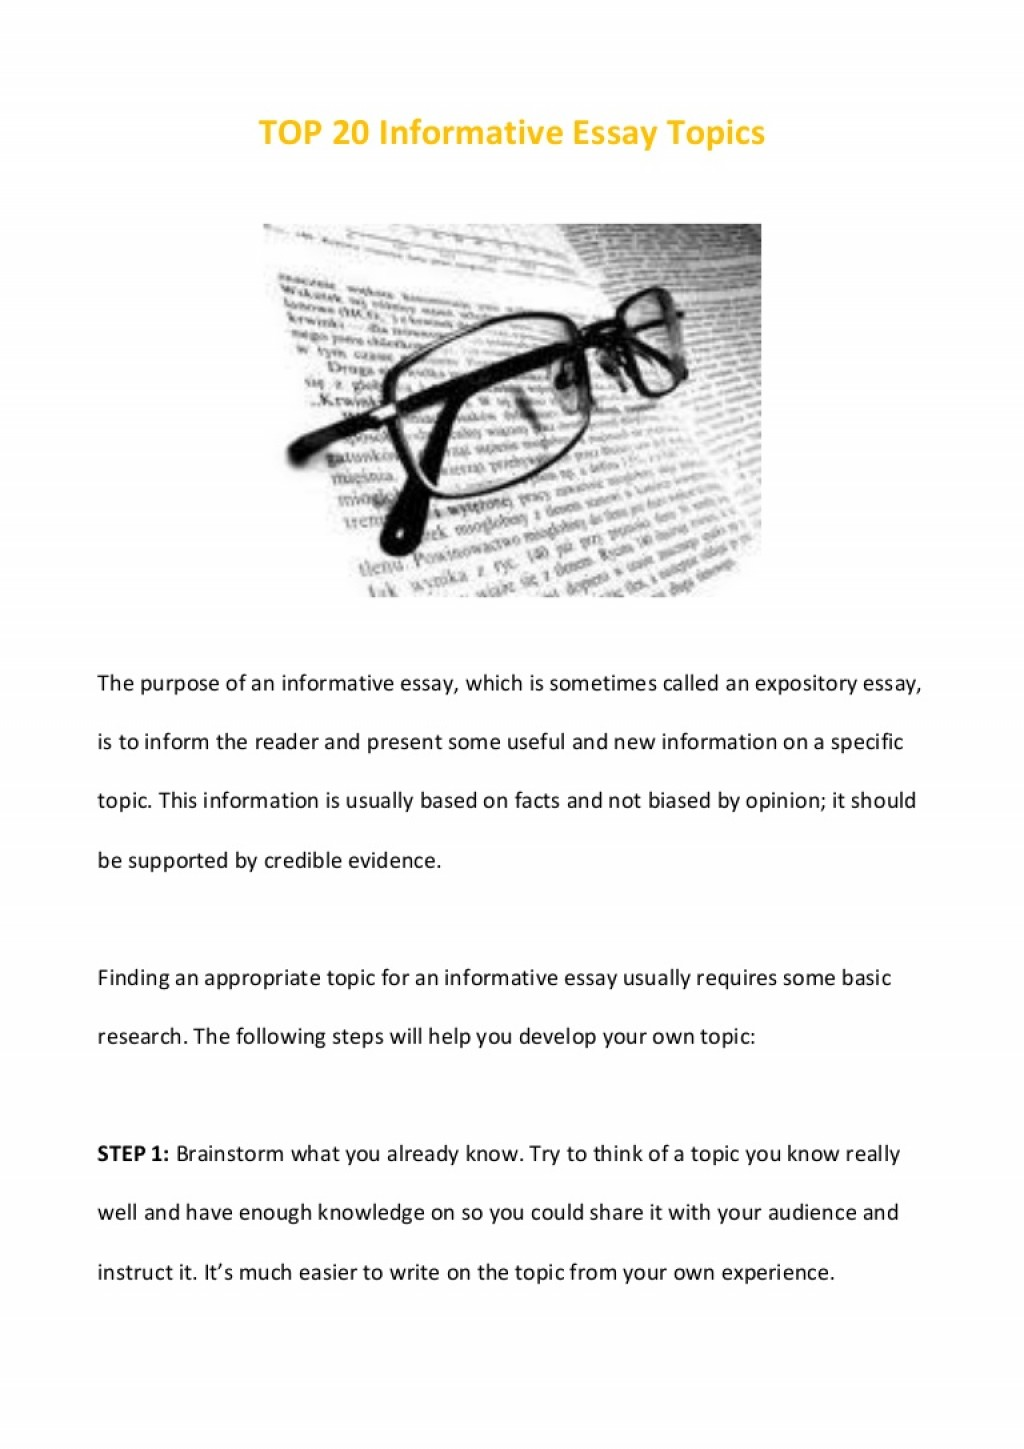 011 Essay Example Top20informativeessaytopics Phpapp02 Thumbnail Informative Remarkable Topics Middle School Fourth Grade For Graders Large